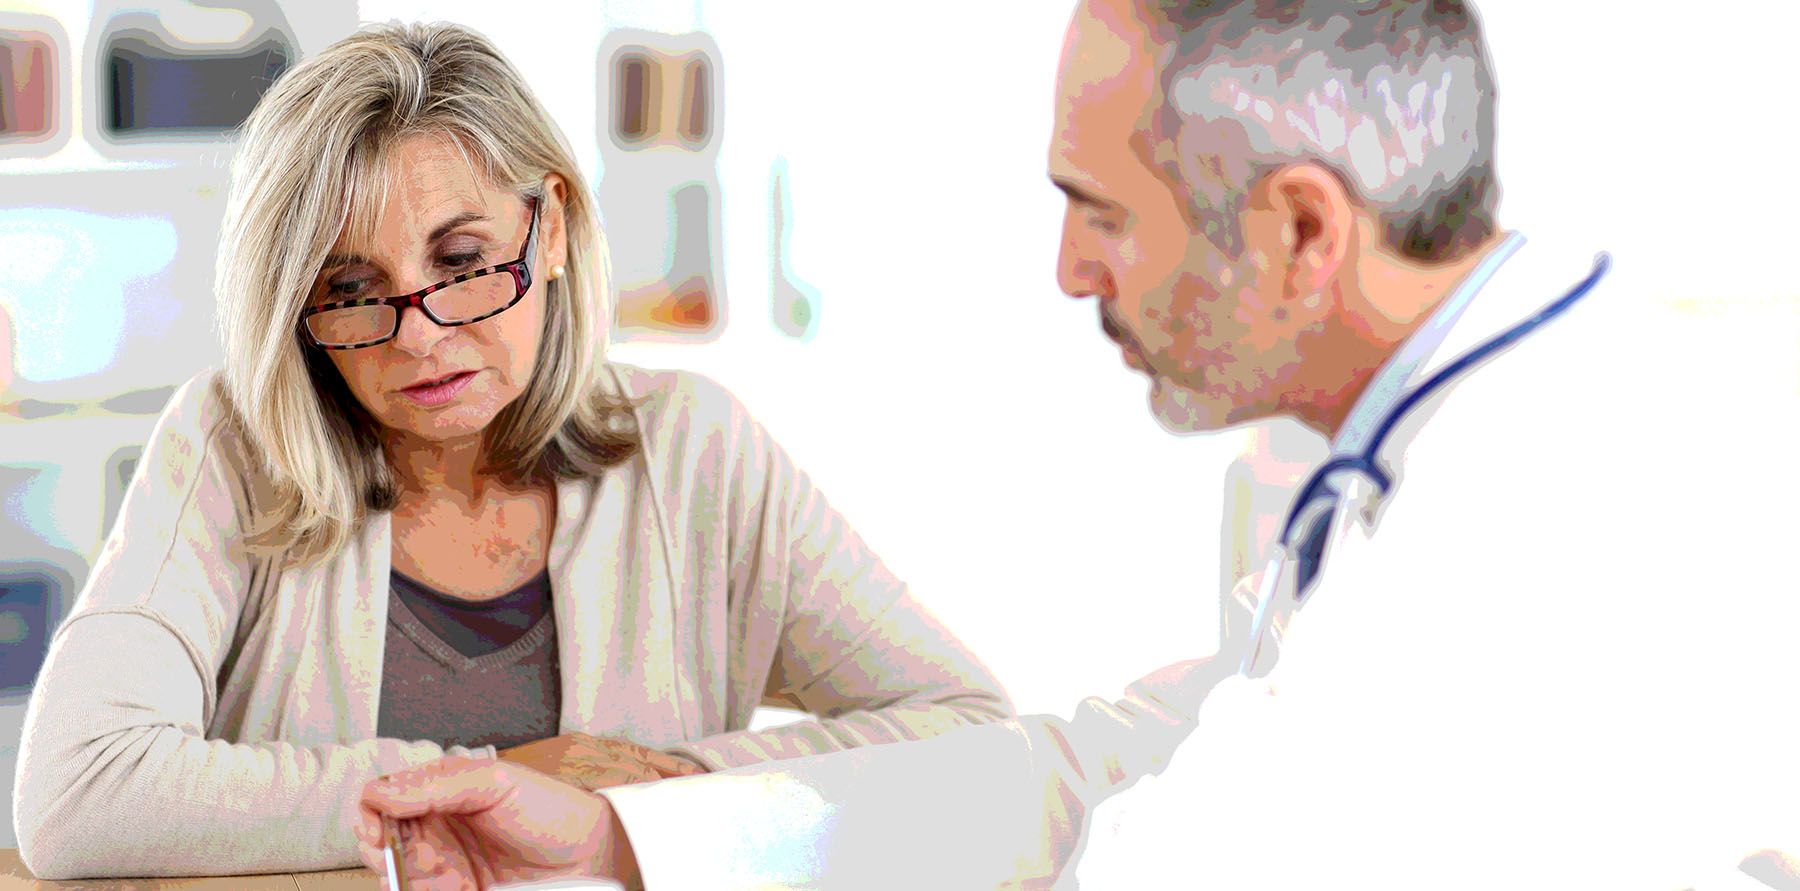 Questions to ask before a colonoscopy